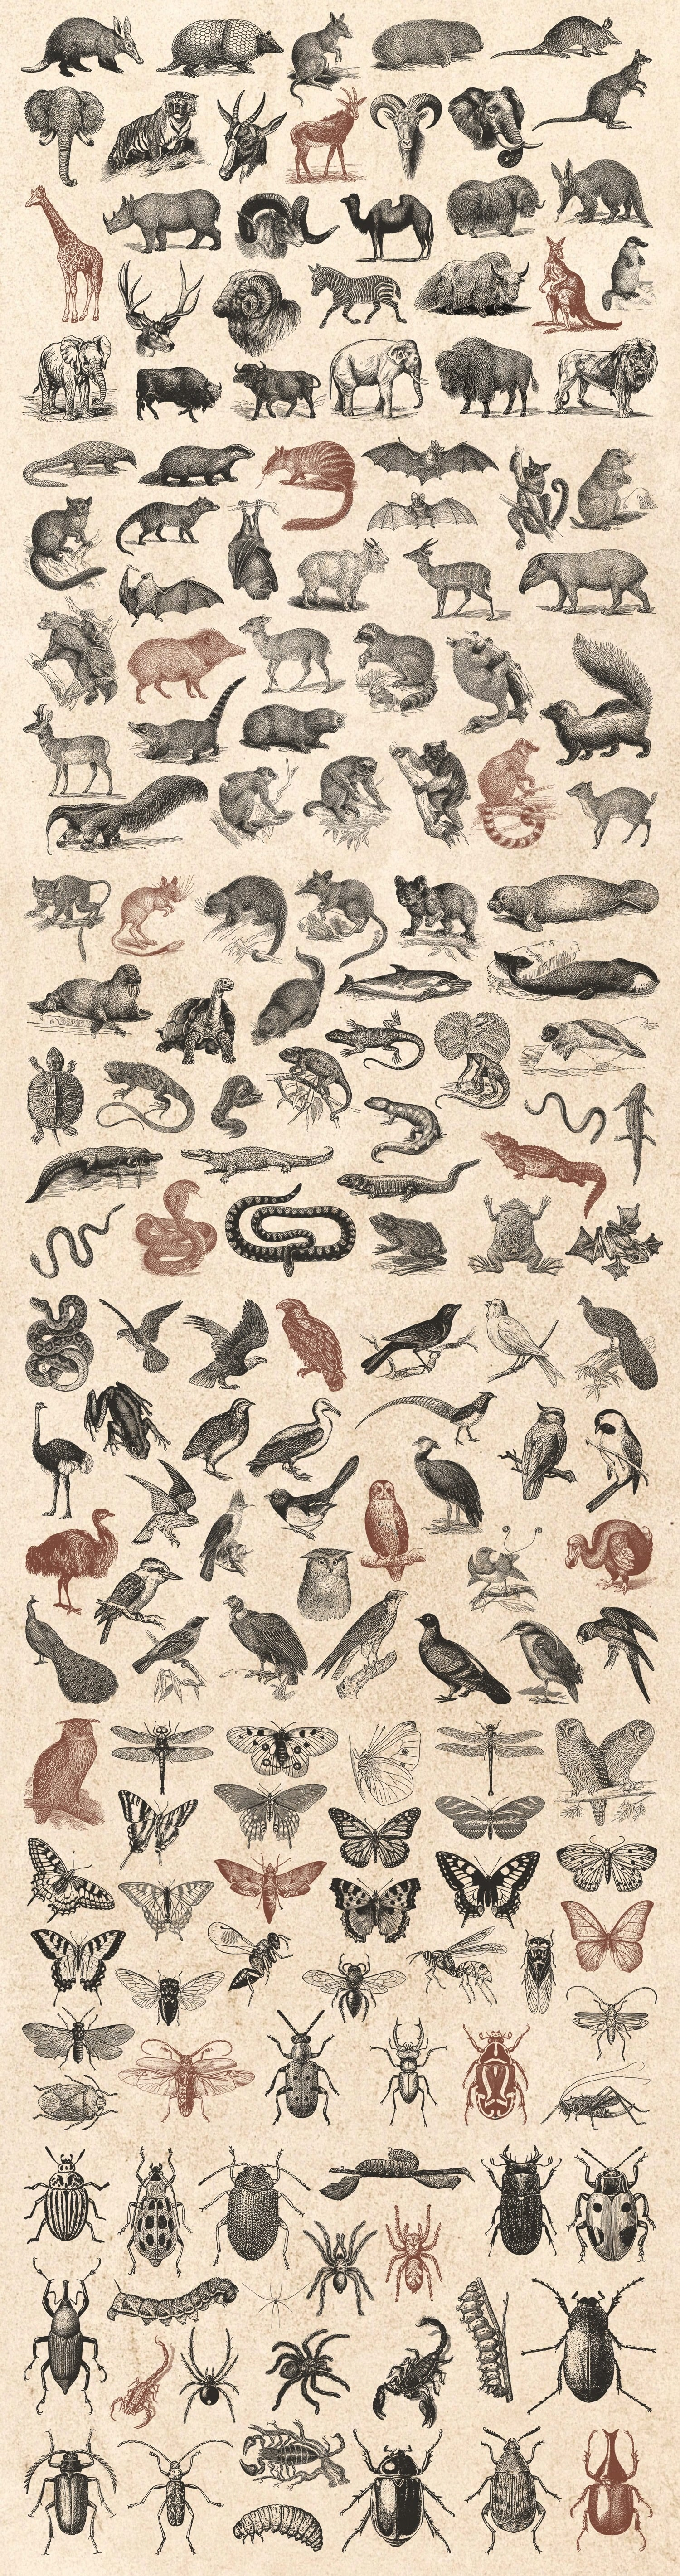 1000 Vintage Illustrations with 80% OFF - 9 wildanimals1